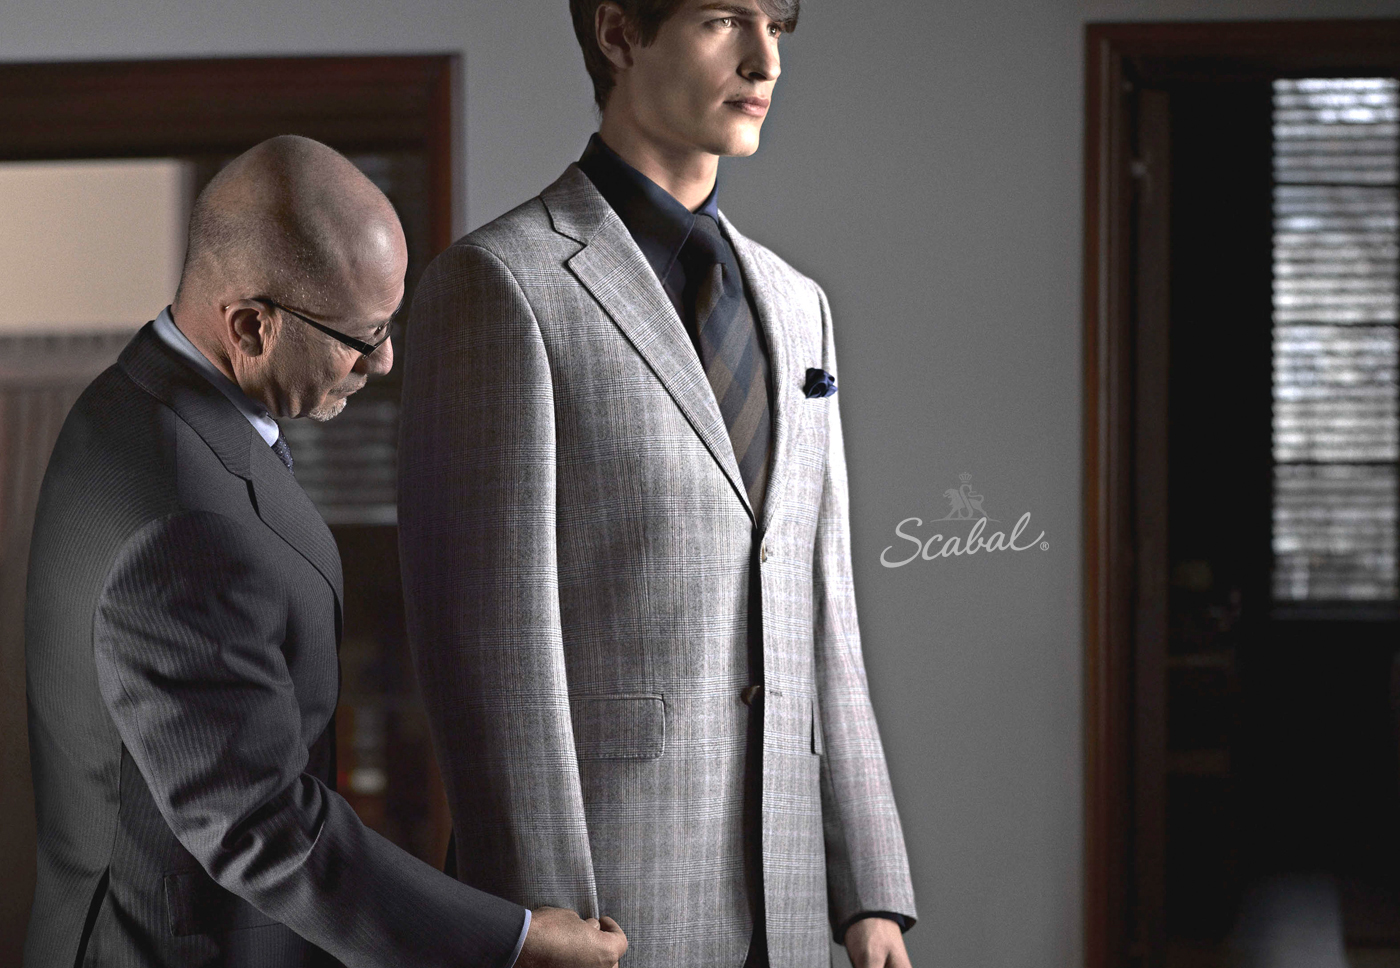 Alteration san diego wedding suit san diego for Custom tailored shirts chicago